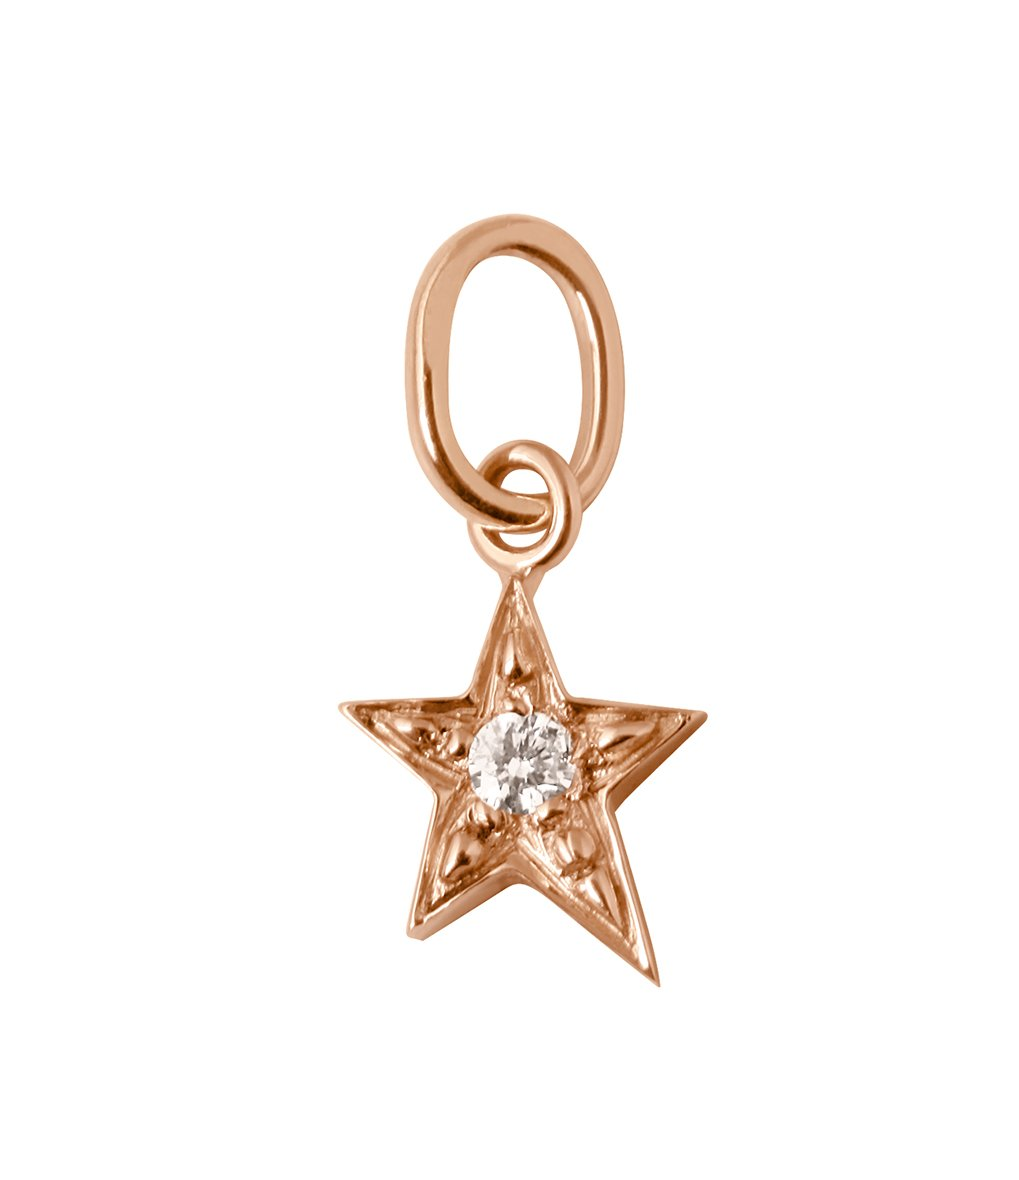 Gigi Clozeau - Star diamonds pendant, Rose Gold